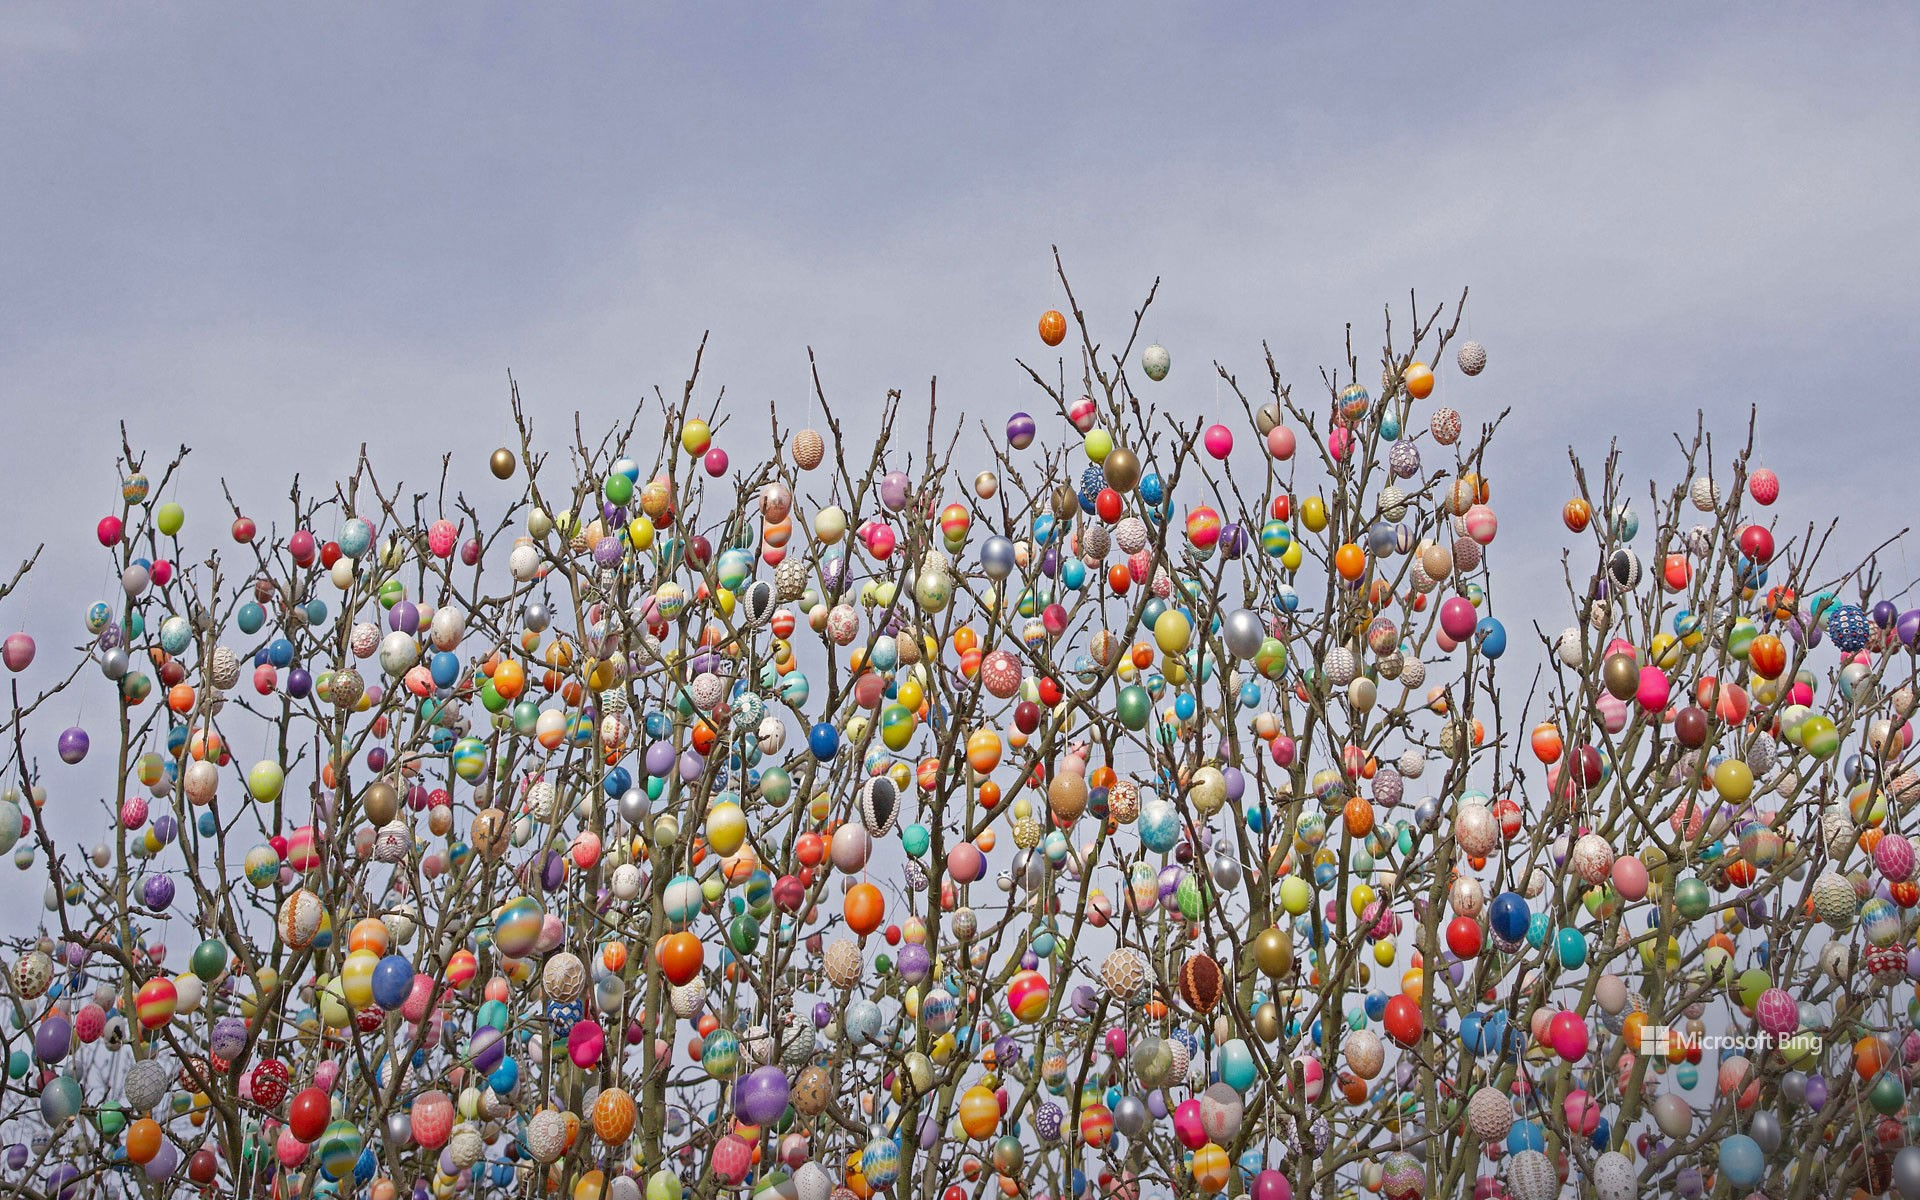 Ostereierbaum (Easter egg tree) in Saalfeld, Germany